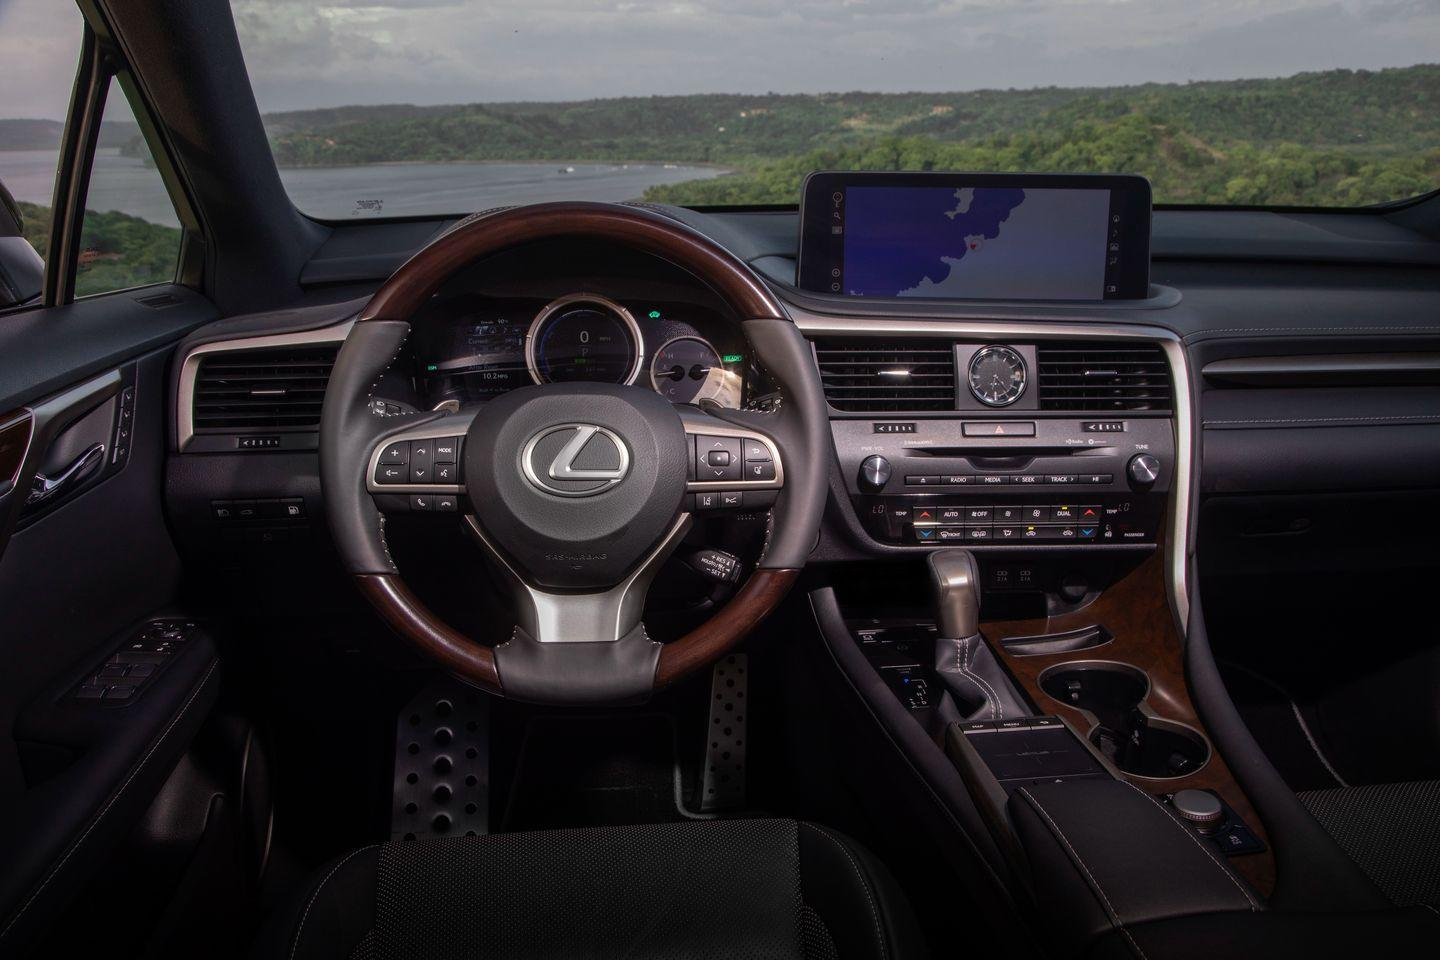 <p>An 8.0-inch infotainment screen is standard while a 12.3-inch unit is optional, and both can now be controlled via touch in addition to the touchpad on the center console.</p>